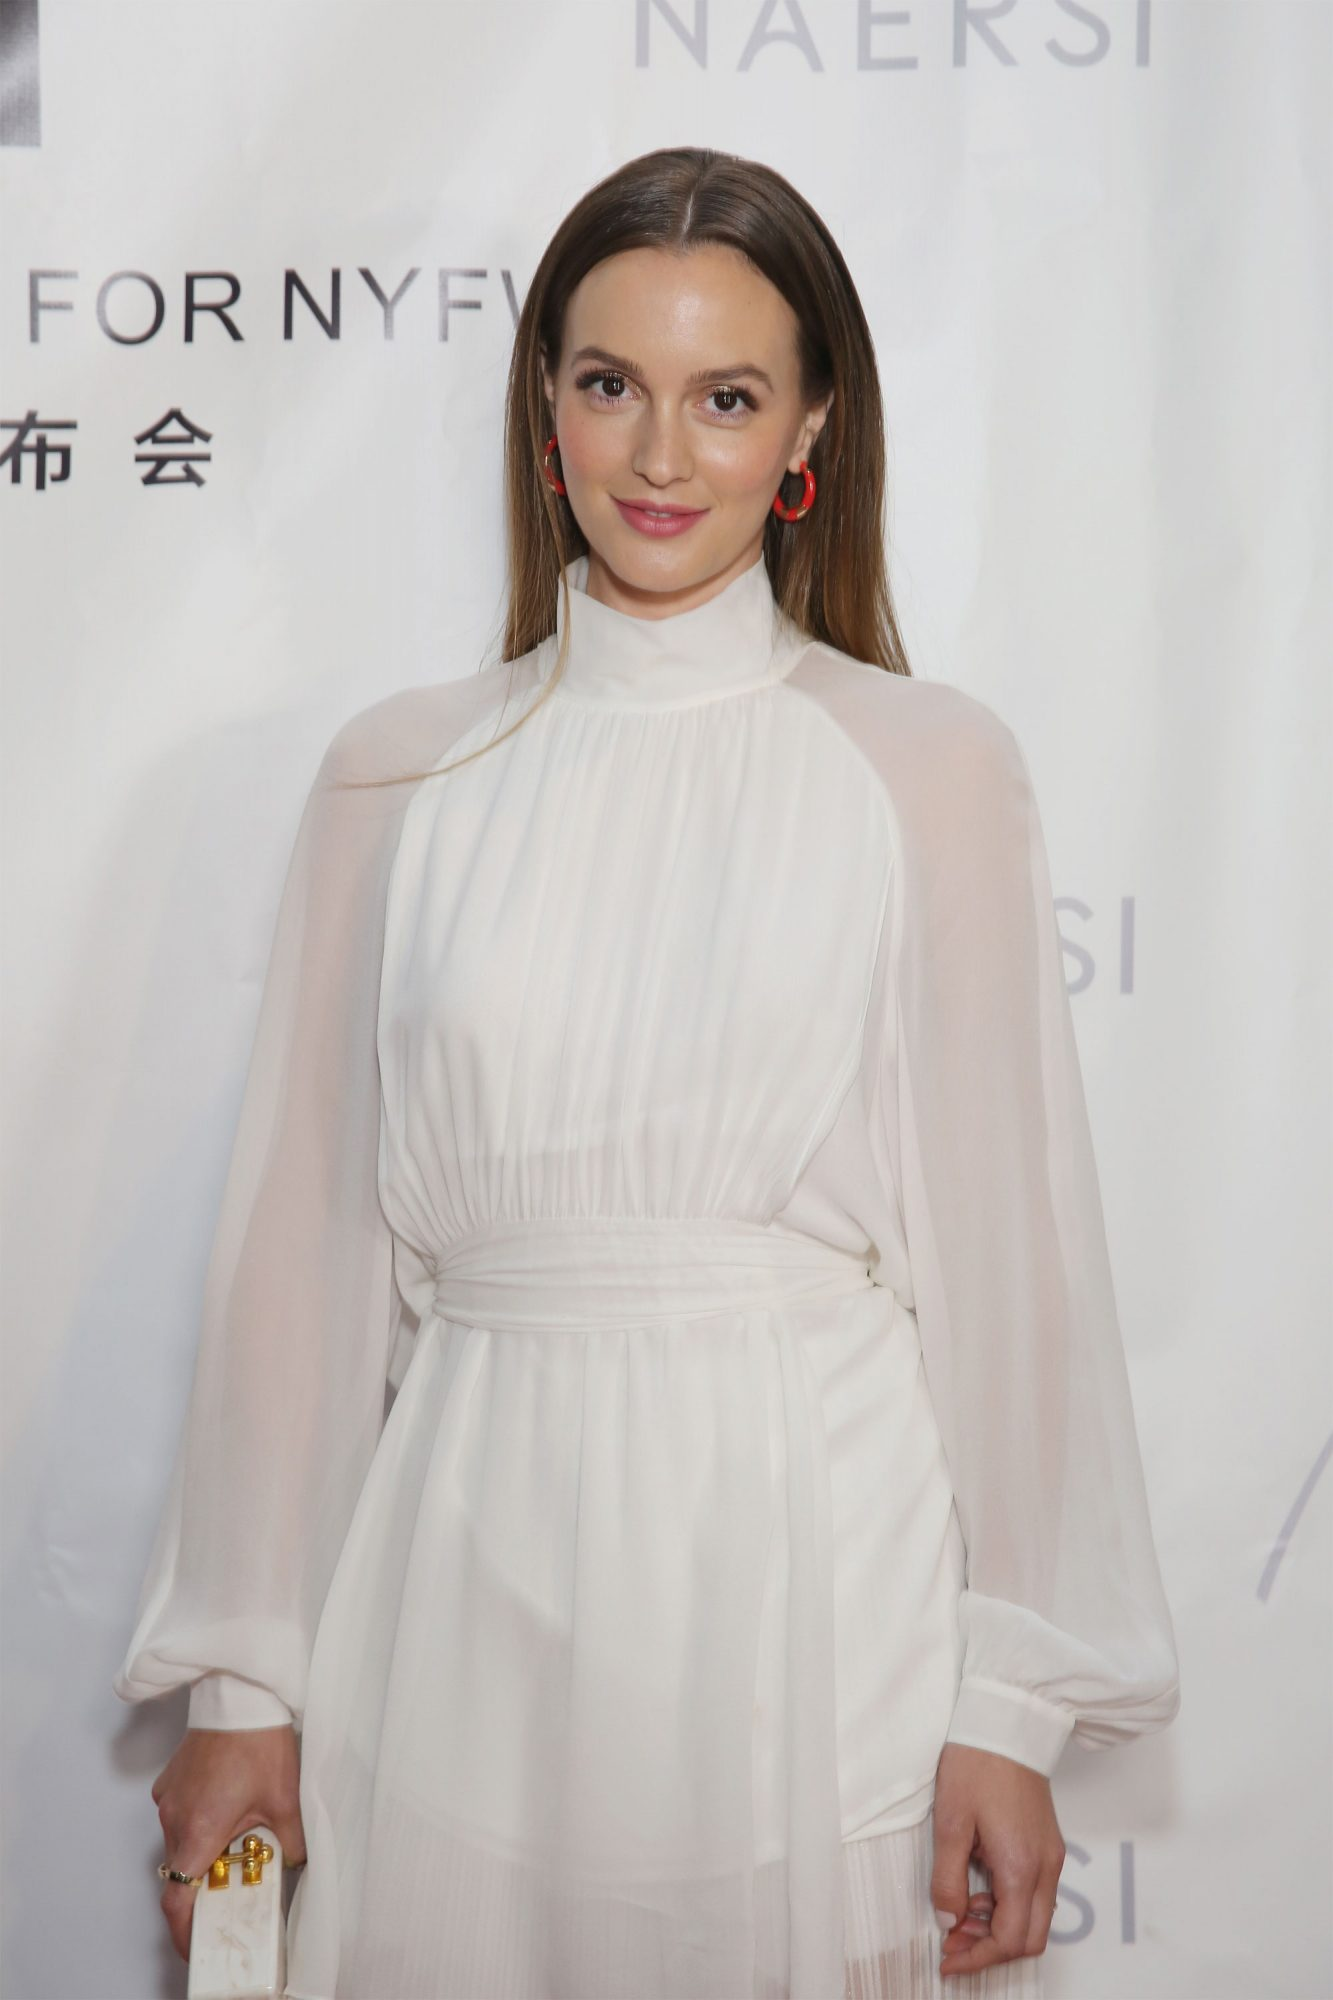 Leighton Mester on a red carpet wearing a white dress